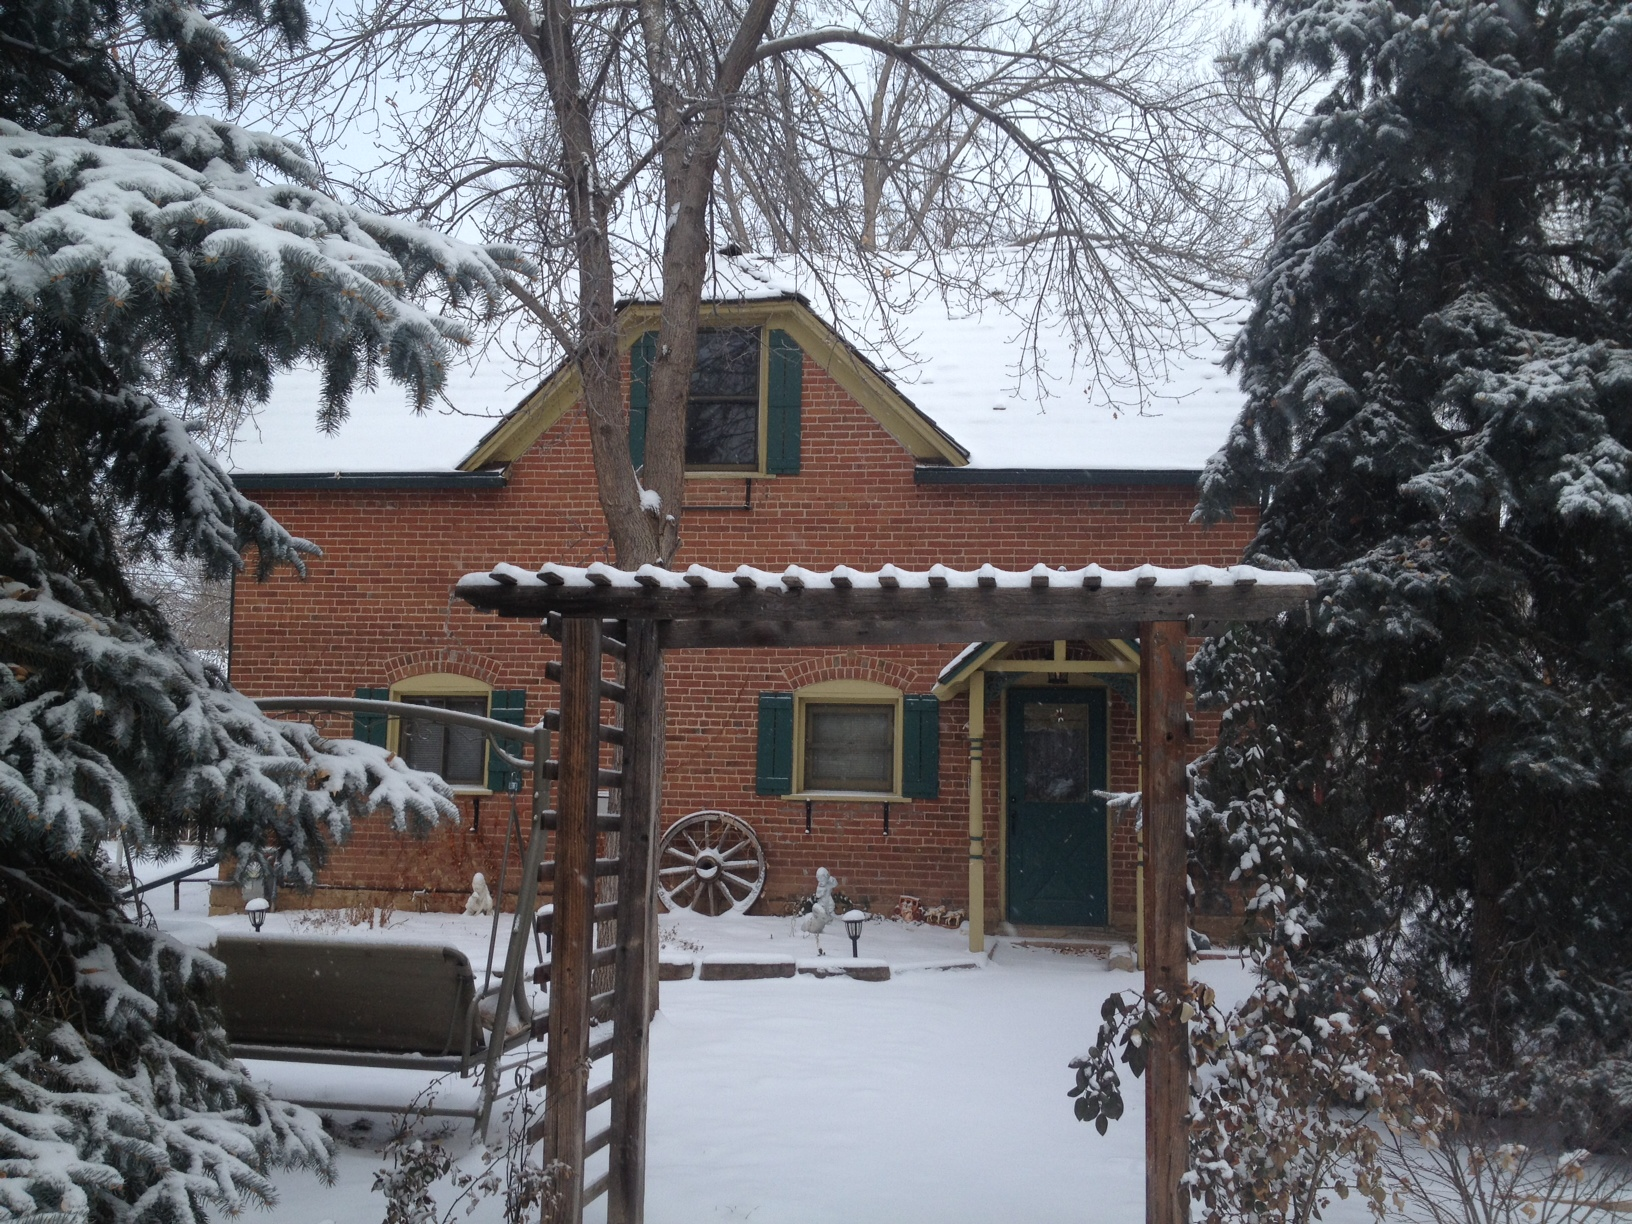 Our cozy cottage blanketed in snow. *swoon*